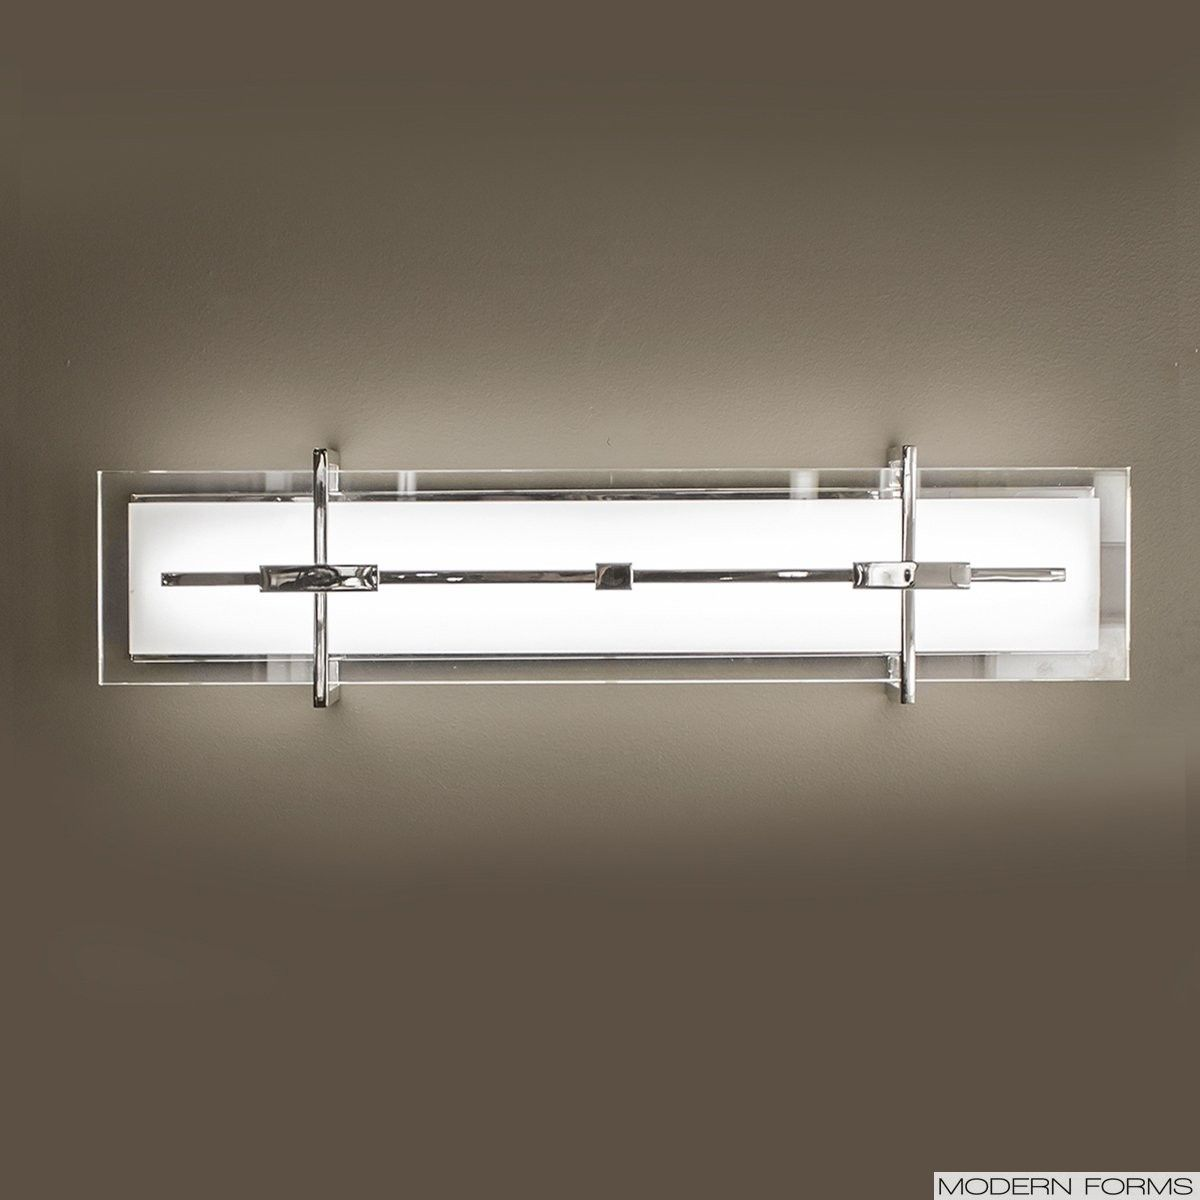 Seismic led wall sconce in stainless steel by modern forms